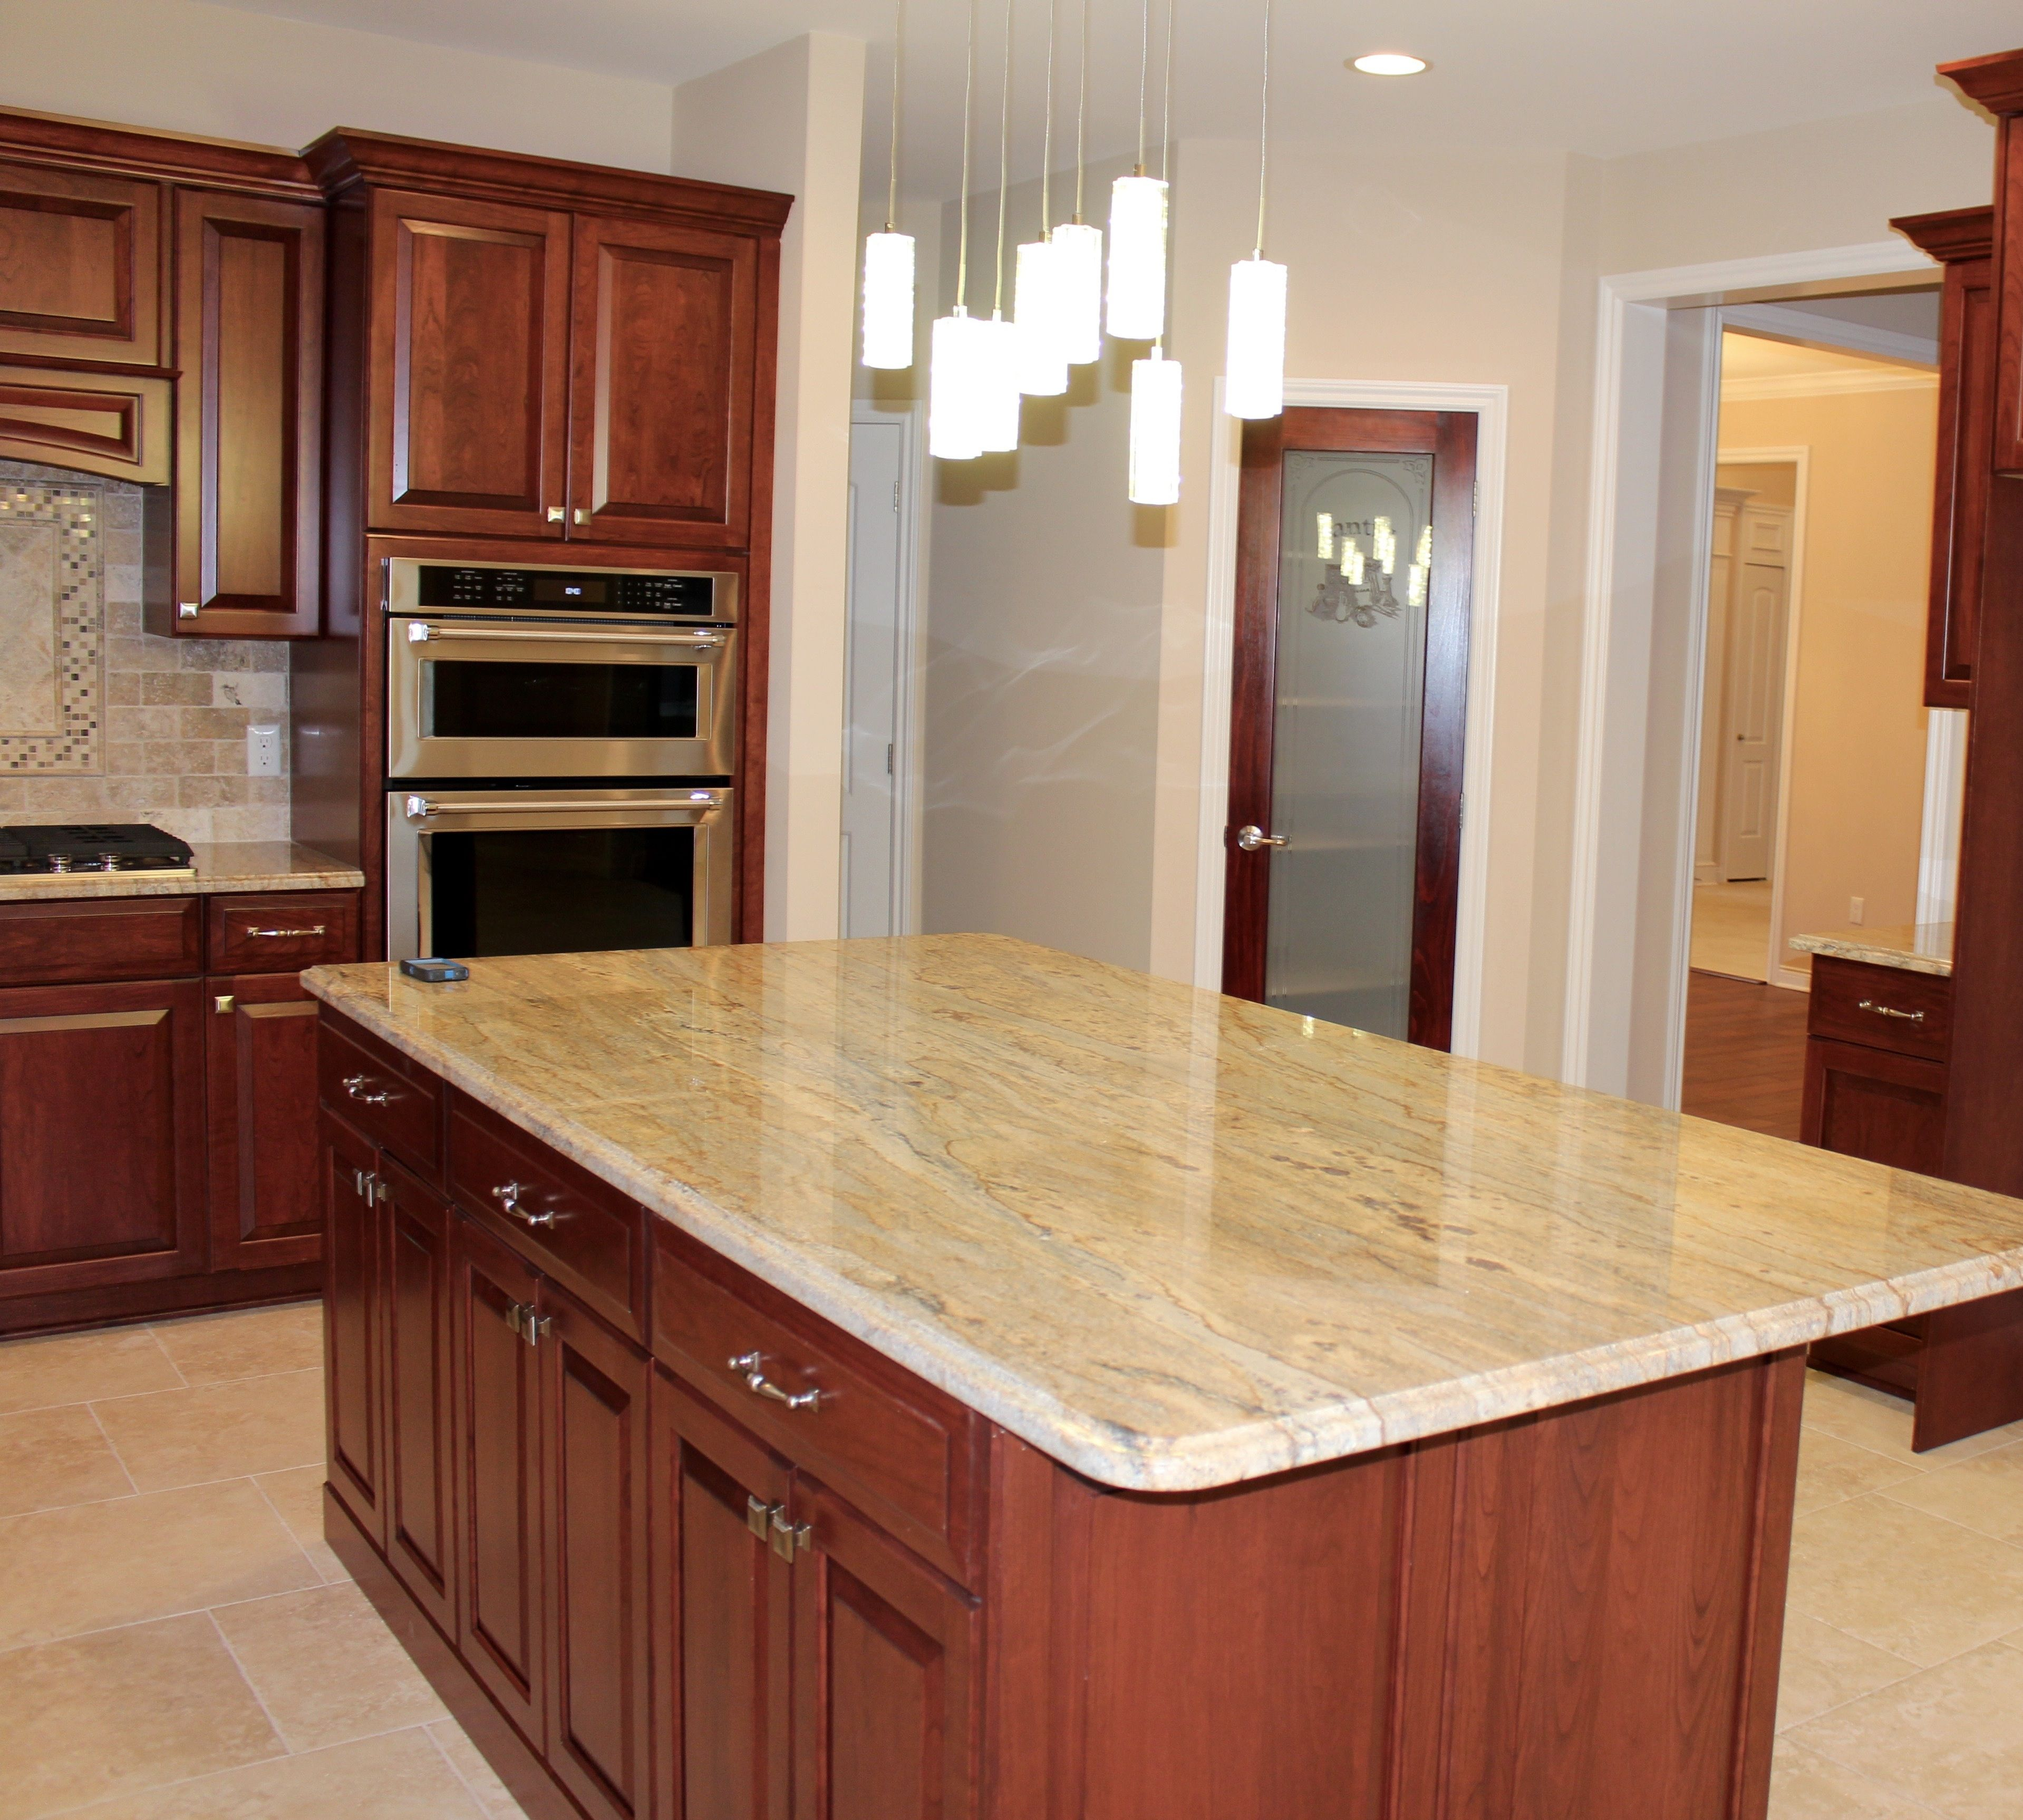 Cabinets By Lafata: Jamestown Style, Cherry Wood, Sienna Finish. Countertops  By Granite USA: Phoenix Gold. Paint By Colorsplash: Sand Dollar.